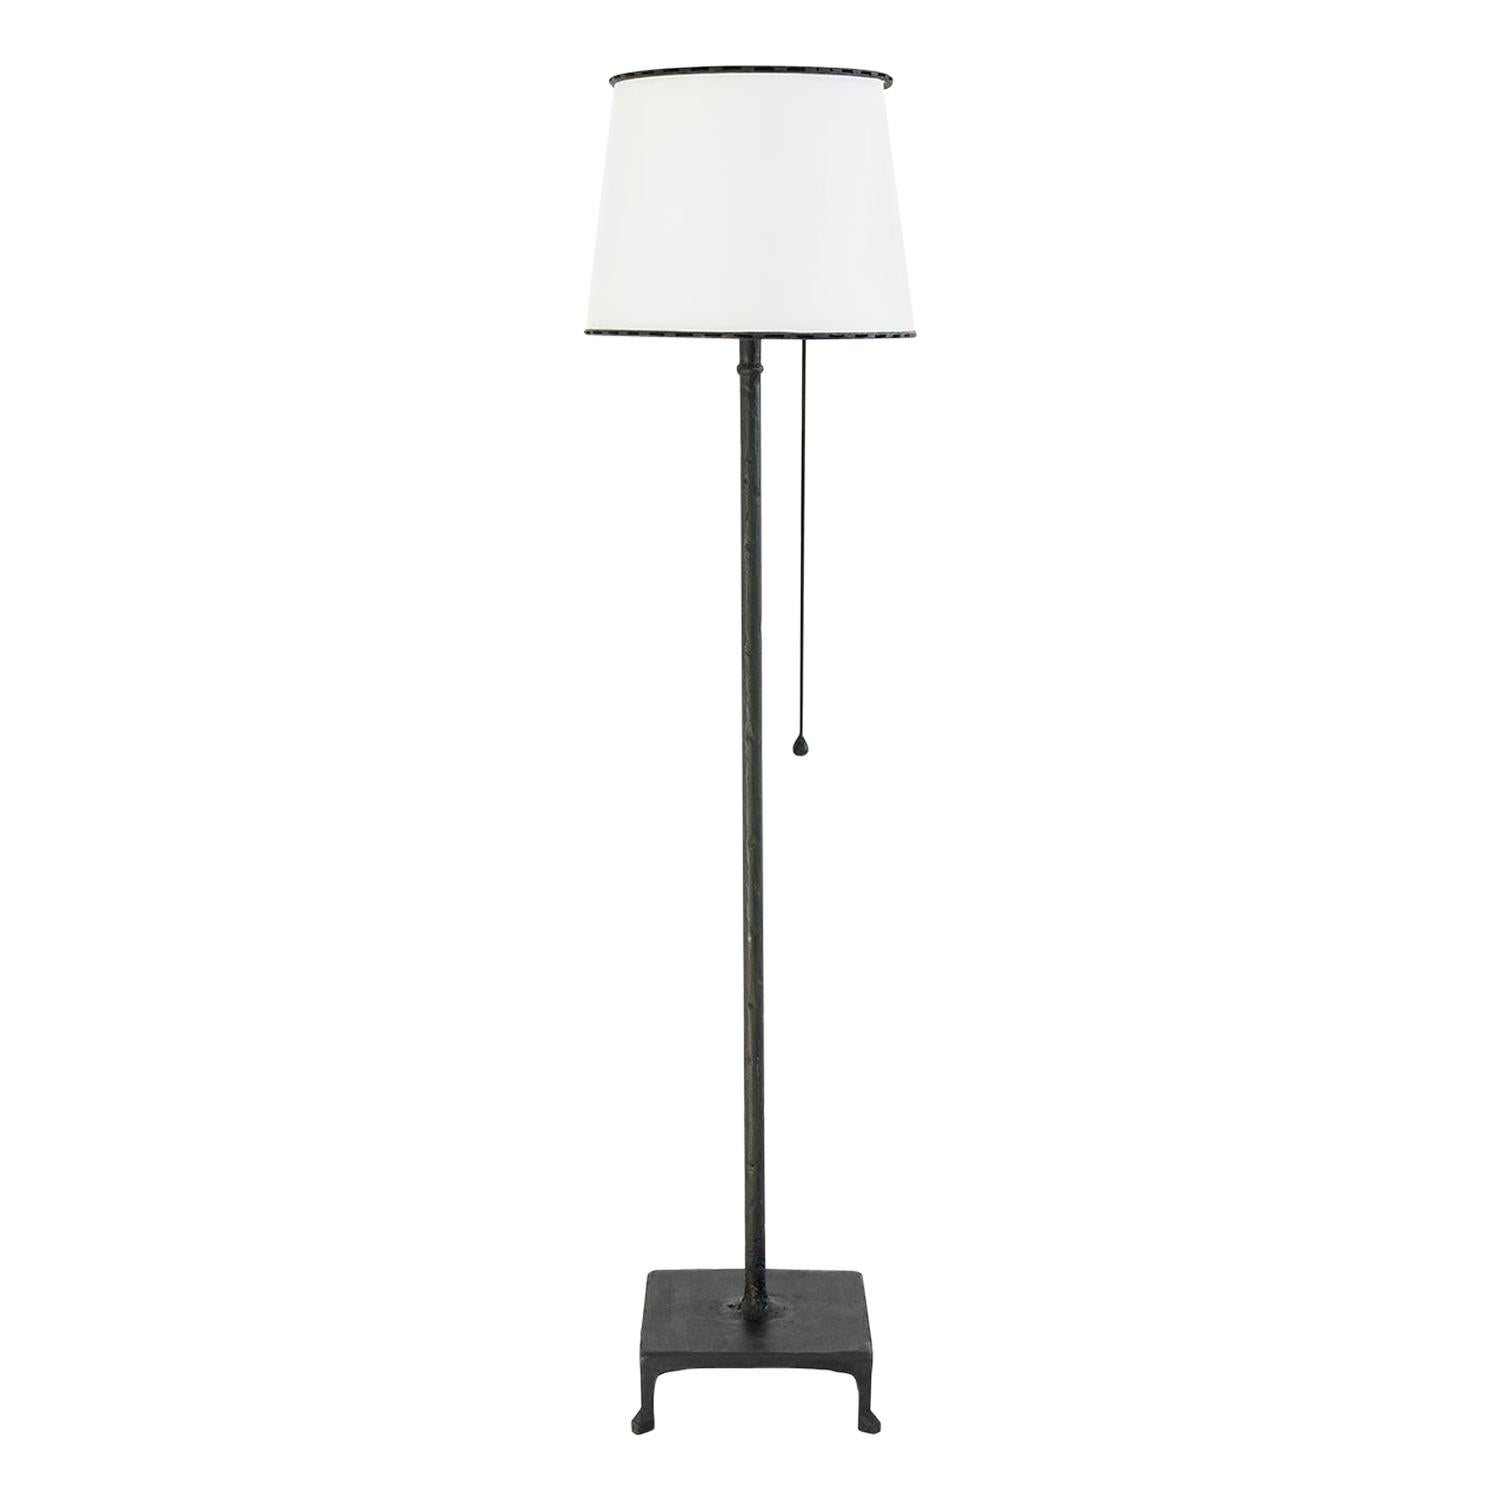 Floor Lamp Classic Contemporary Handsculpted Blackened Steel and Parchment Shade